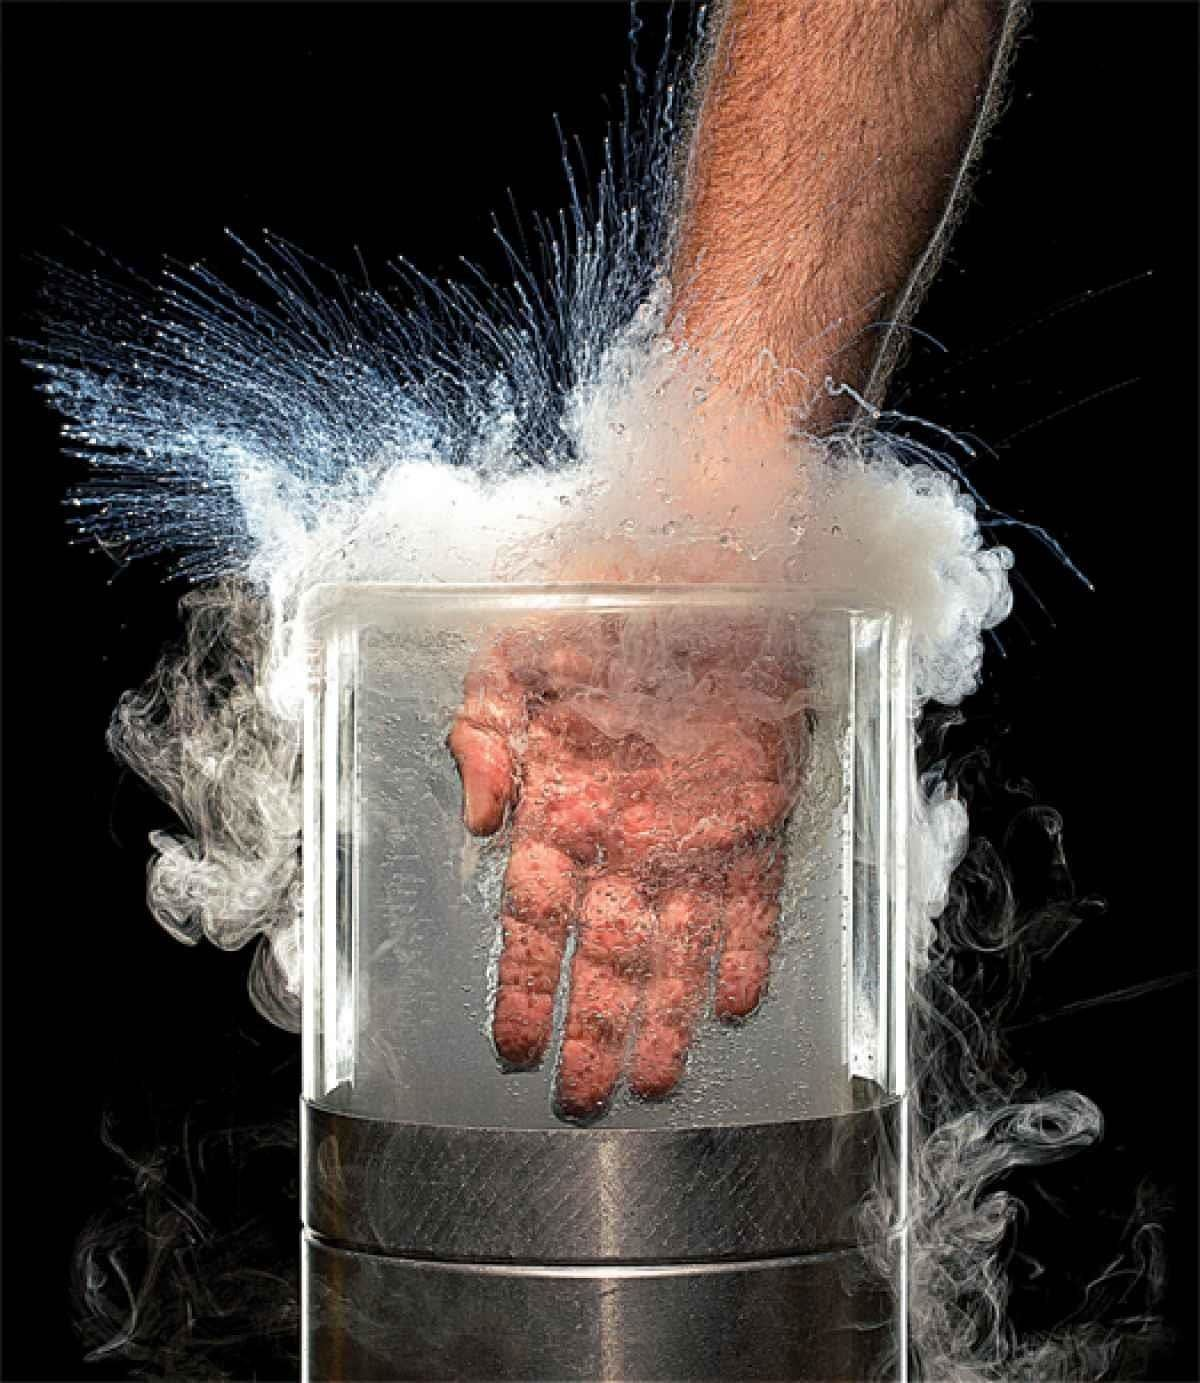 Hand Fully Submerged in Liquid Nitrogen (OUCH... Right?)